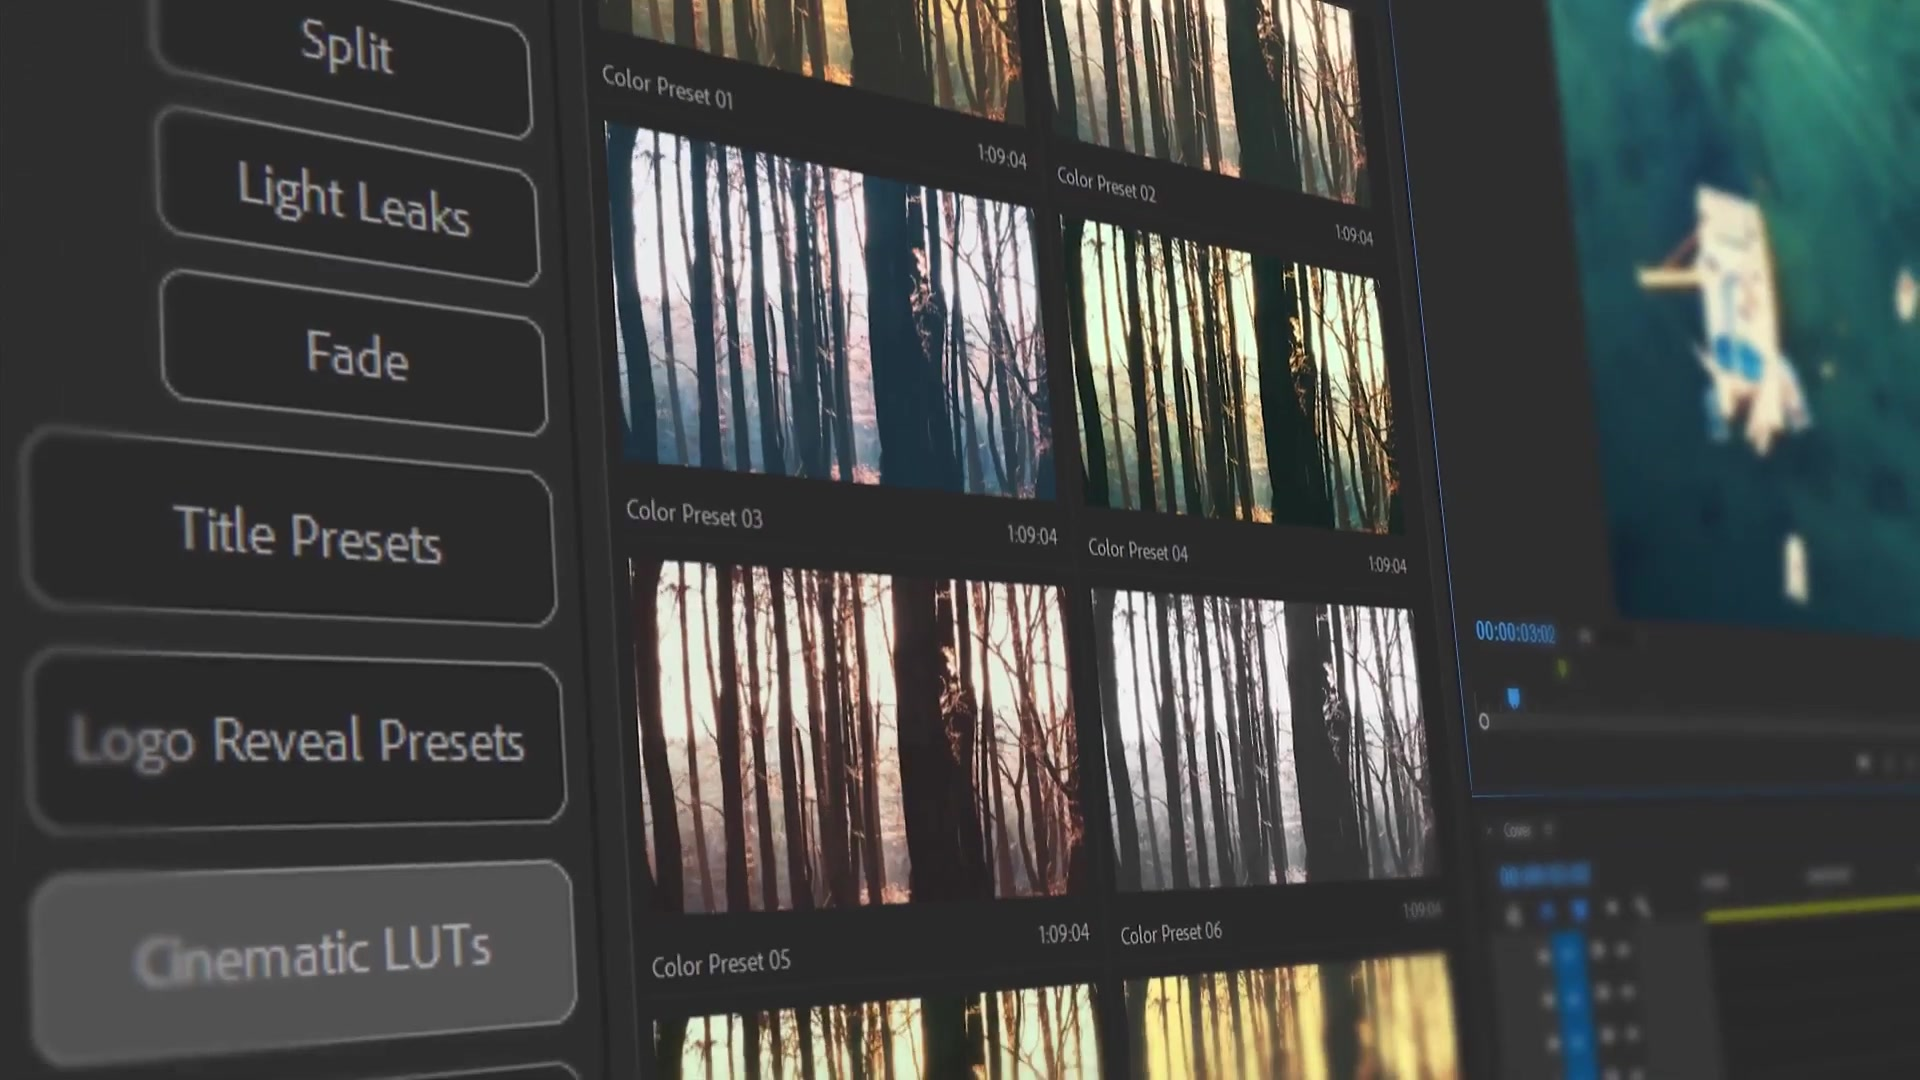 Presets Pack for Premiere Pro: Effects, Transitions, Titles, LUTS, Duotones, Sounds Videohive 24028073 Premiere Pro Image 5